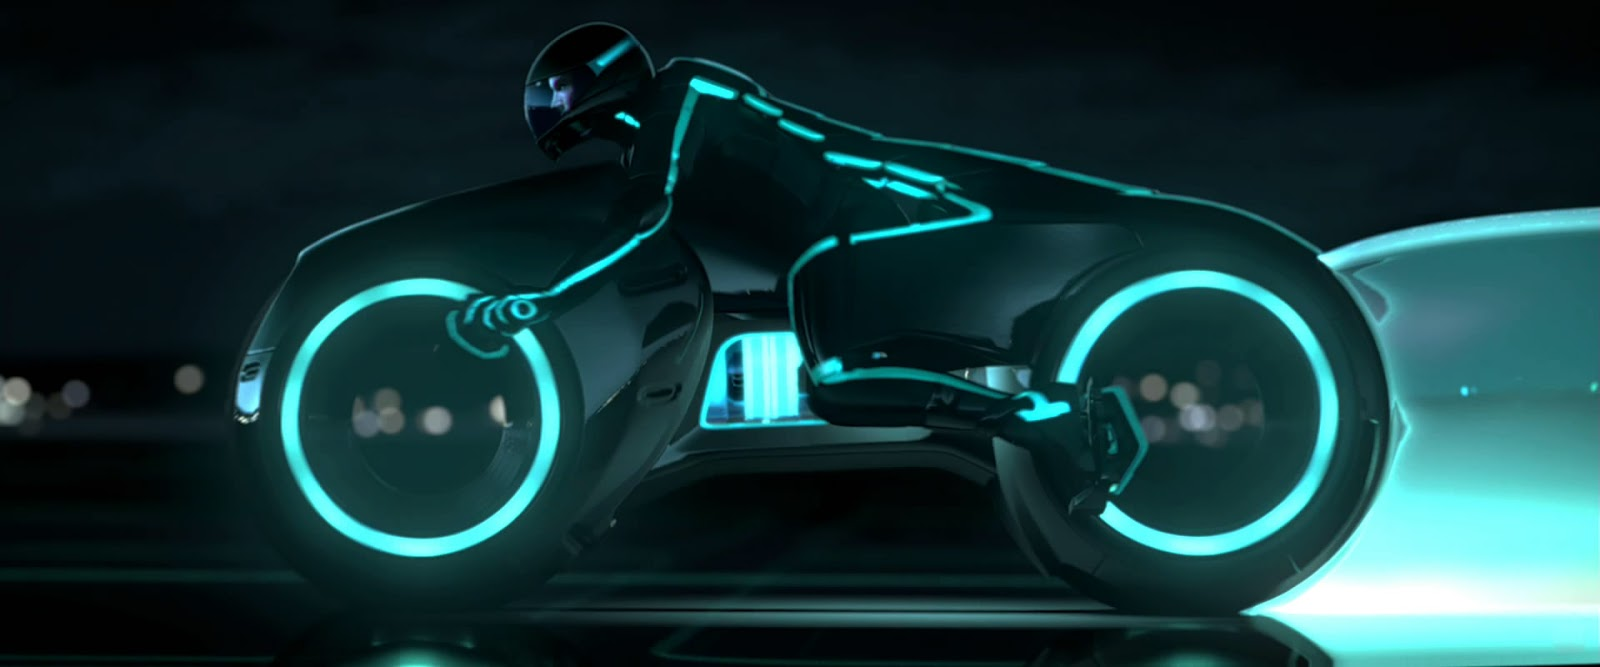 the tron light cycle - photo #22